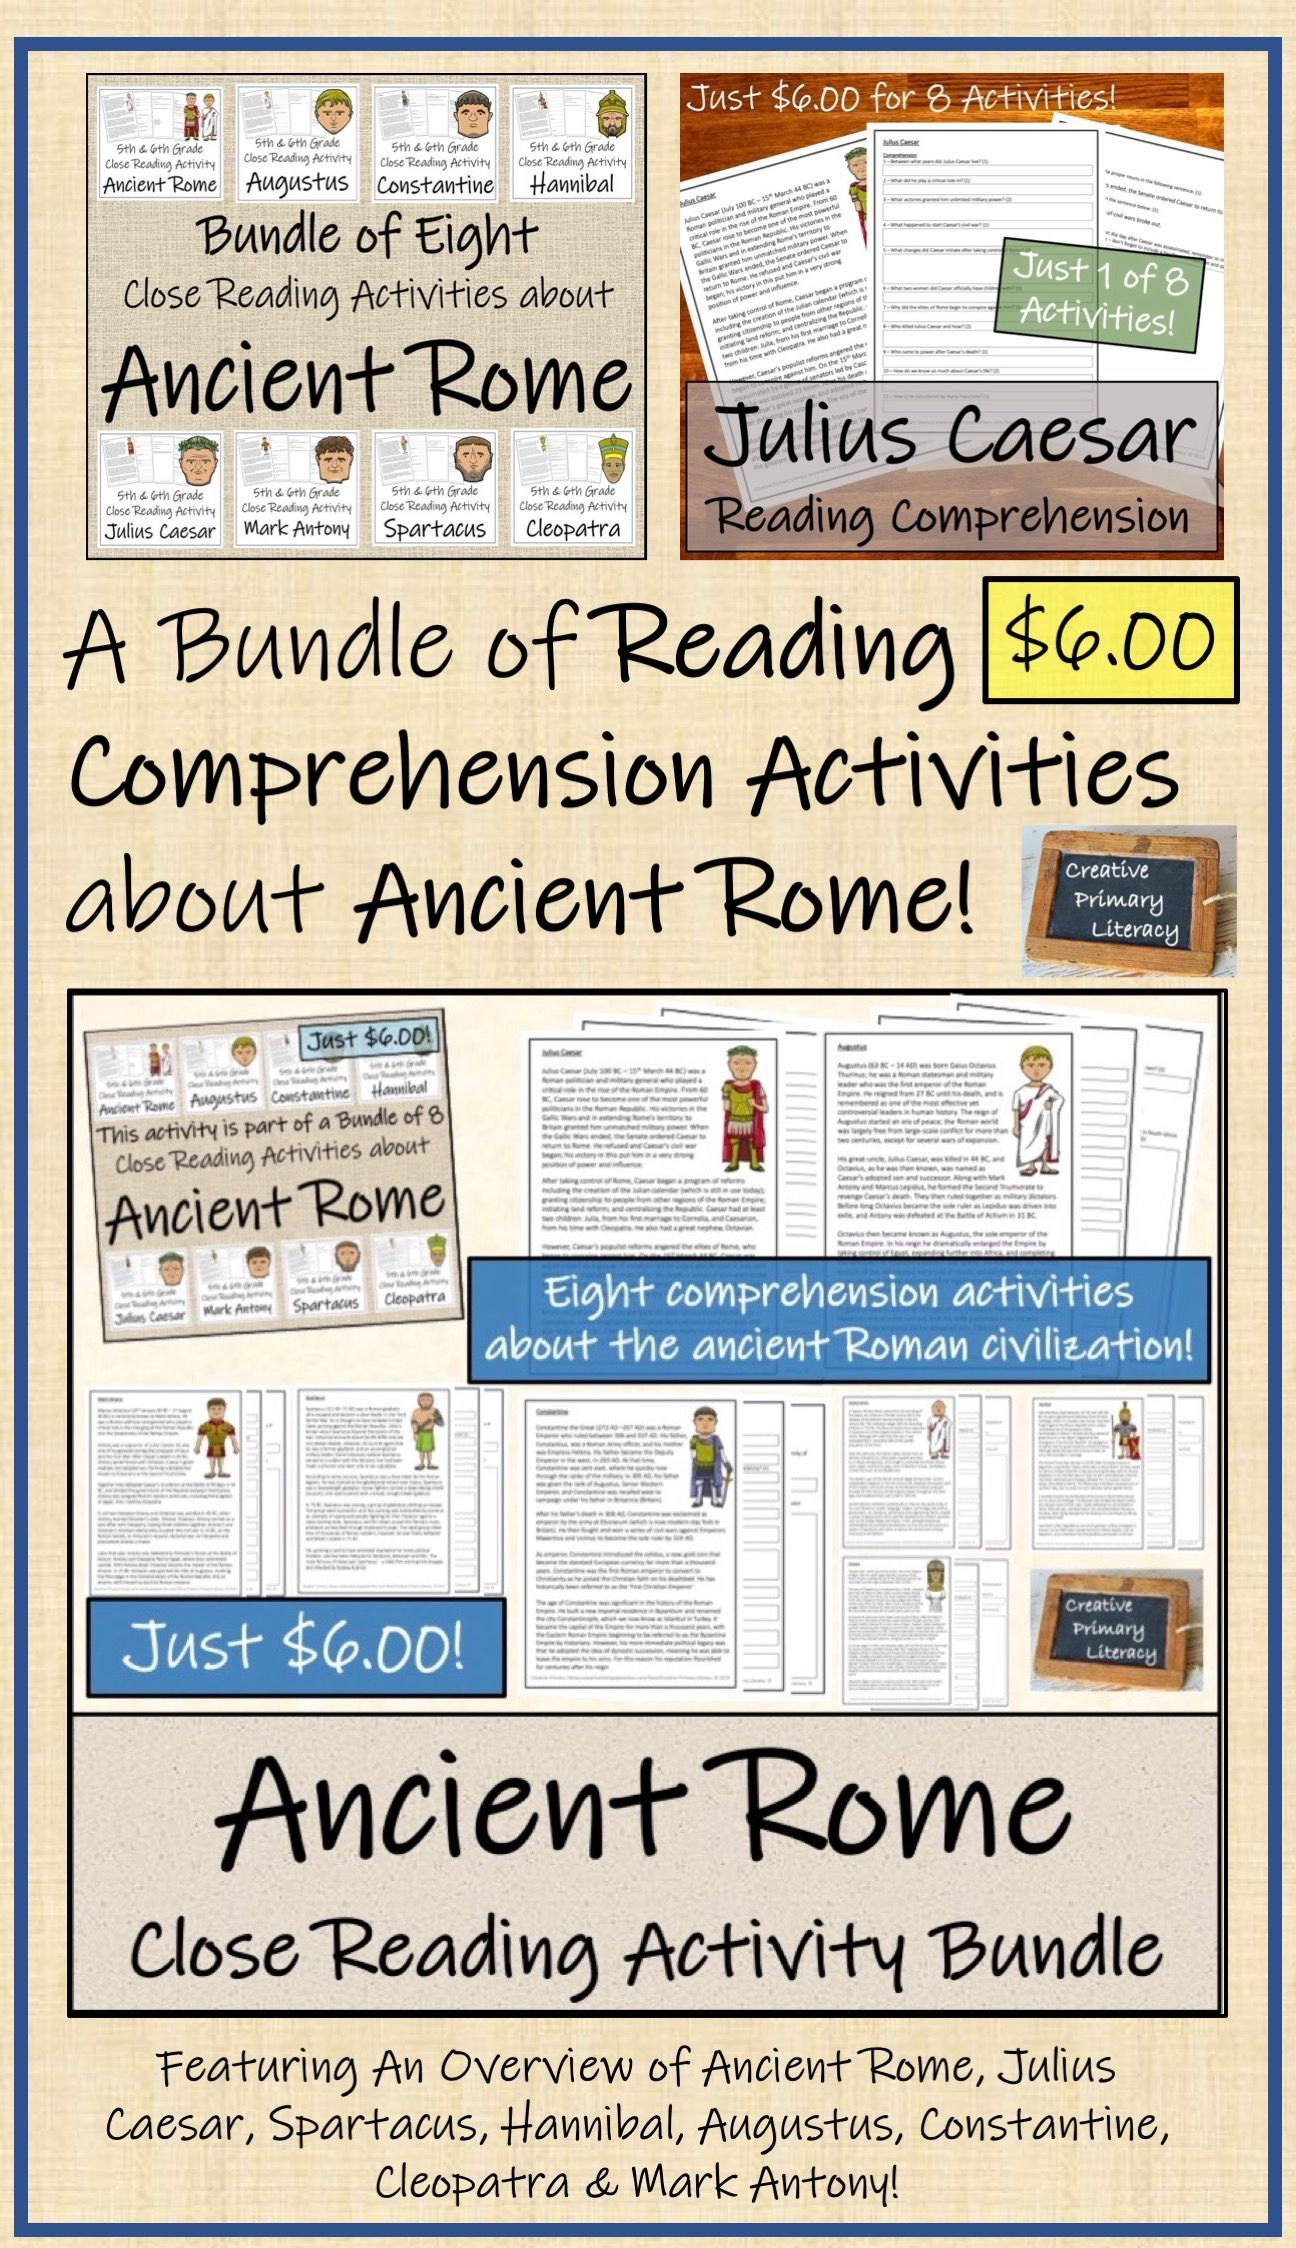 Eight Close Reading Activities About Ancient Rome